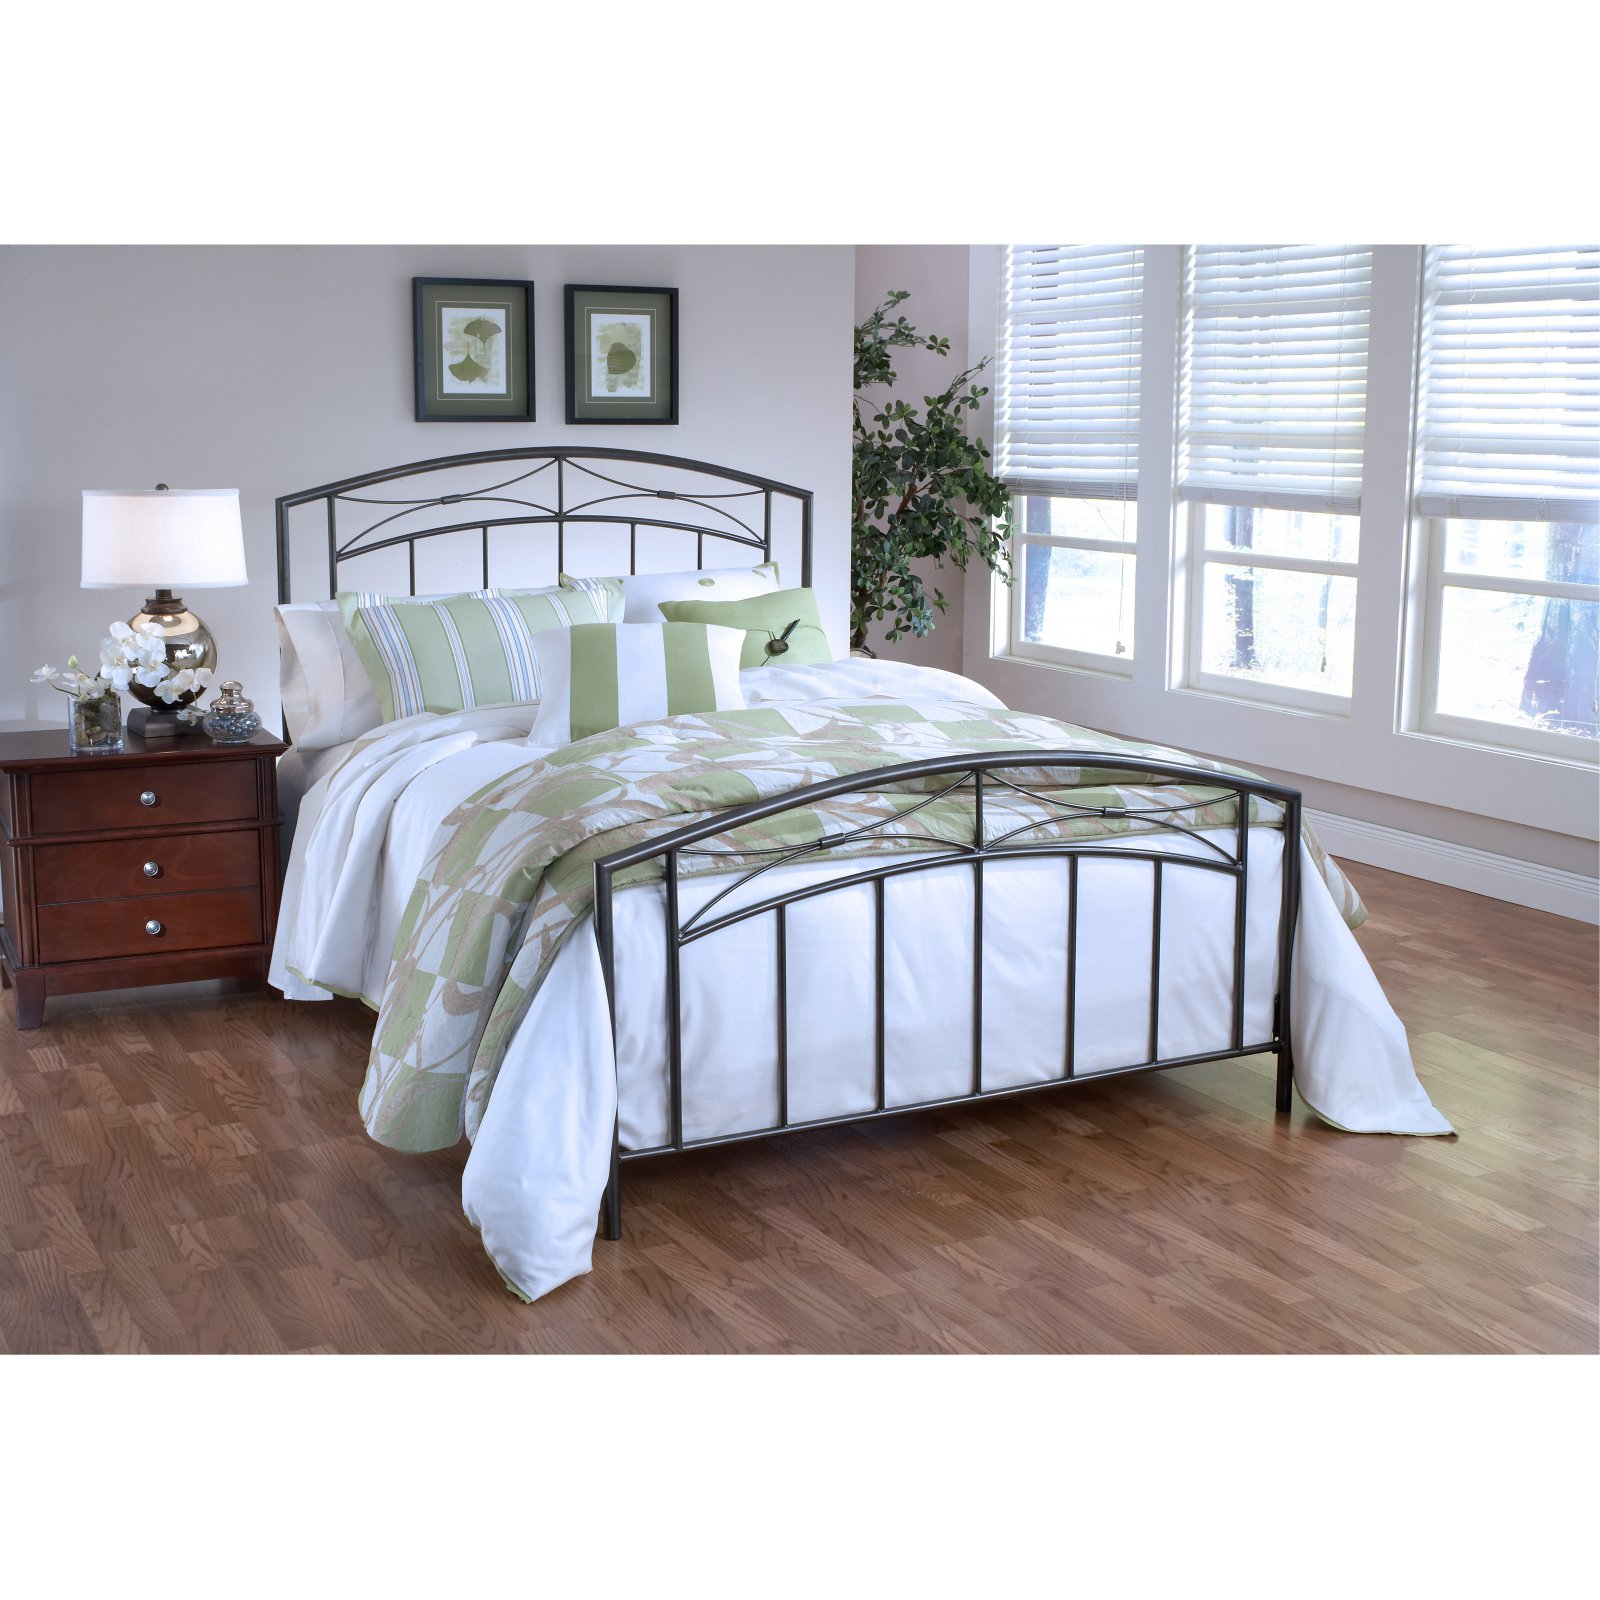 Hillsdale Furniture Morris Bed, Size Queen Full bedding